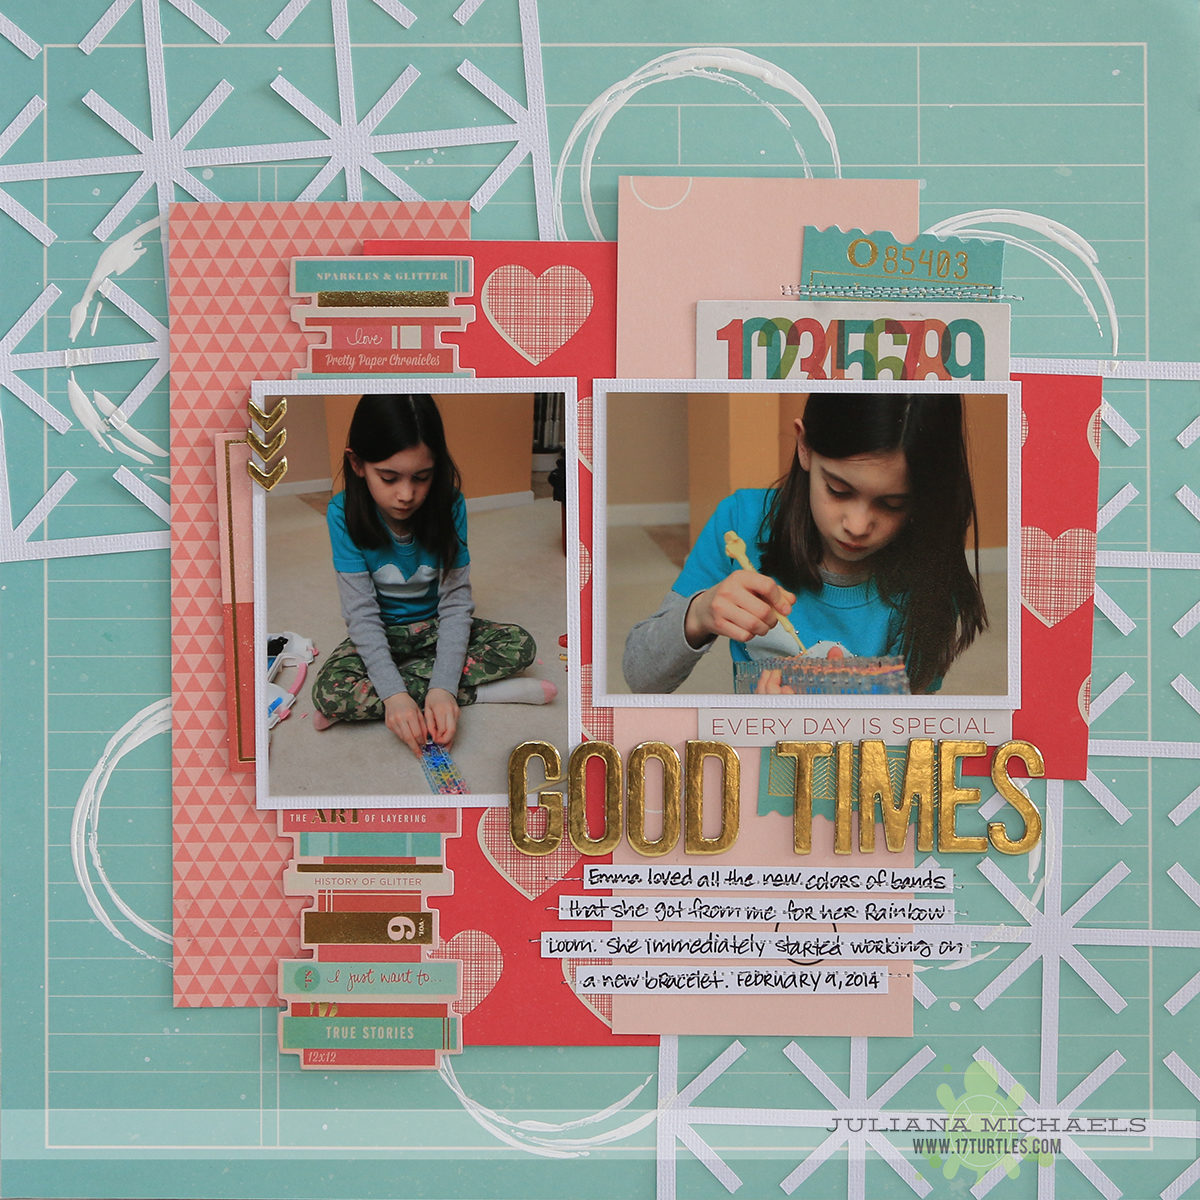 Good Times Rainbow Loom Scrapbook Page Fun with Background Digital Cut Files by Juliana Michaels featuring 17turtles Digital Cut Files